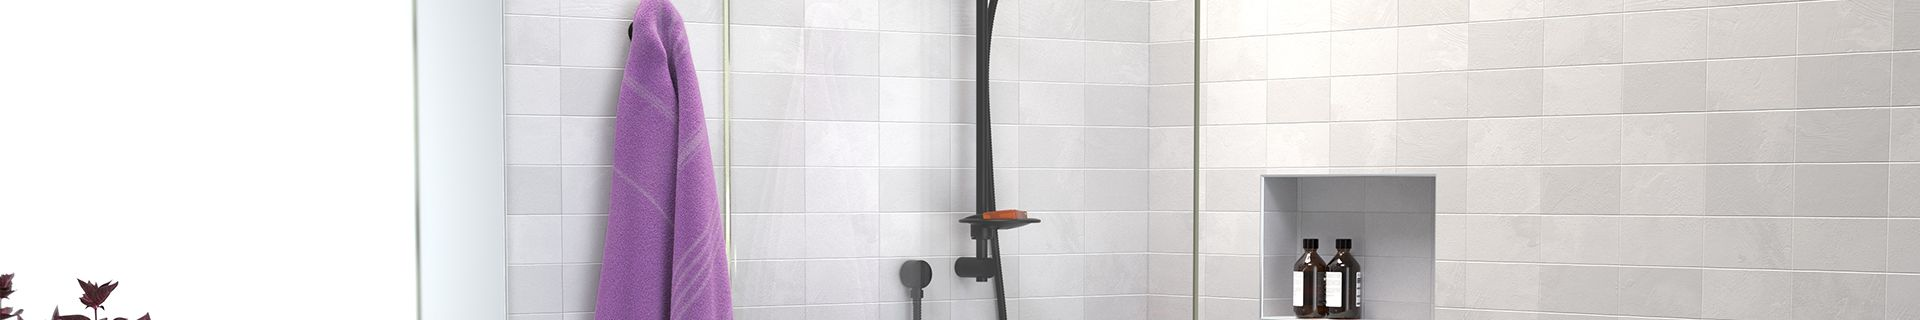 Shower with black tapware and shower recess